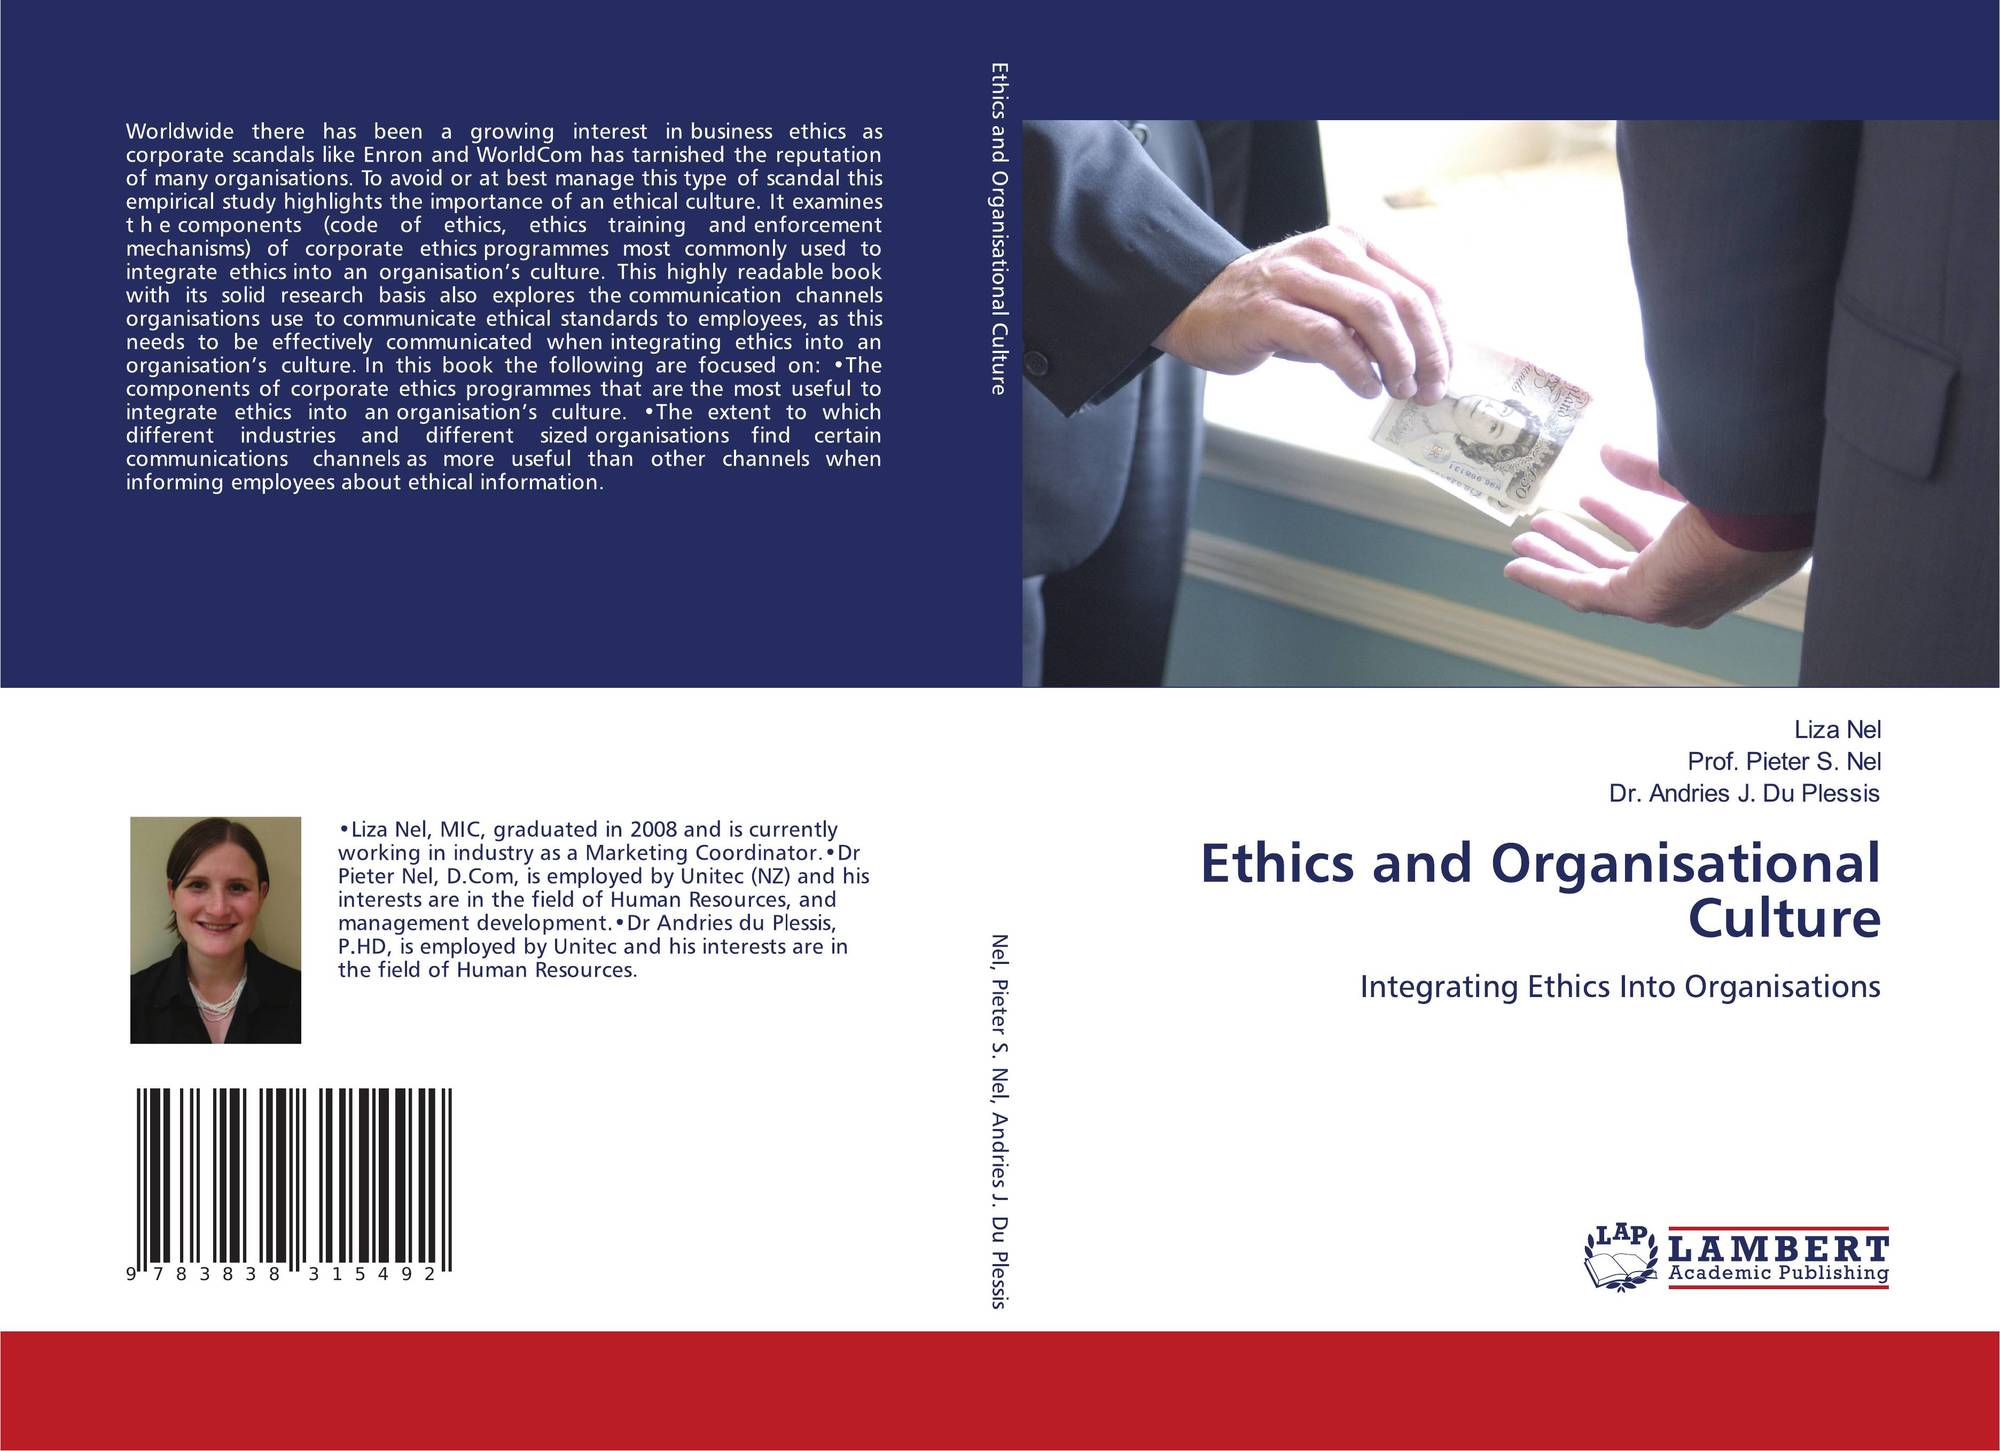 culture and ethics in ghanaian professional Preamble: the code of ethics for the ghana health service (ghs) defines the genera moral principles and rules of behavior for all service personnel in the ghana all health professionals shall be registered and remain registered with their professional regulatory bodies all service personnel shall respect the rights of.